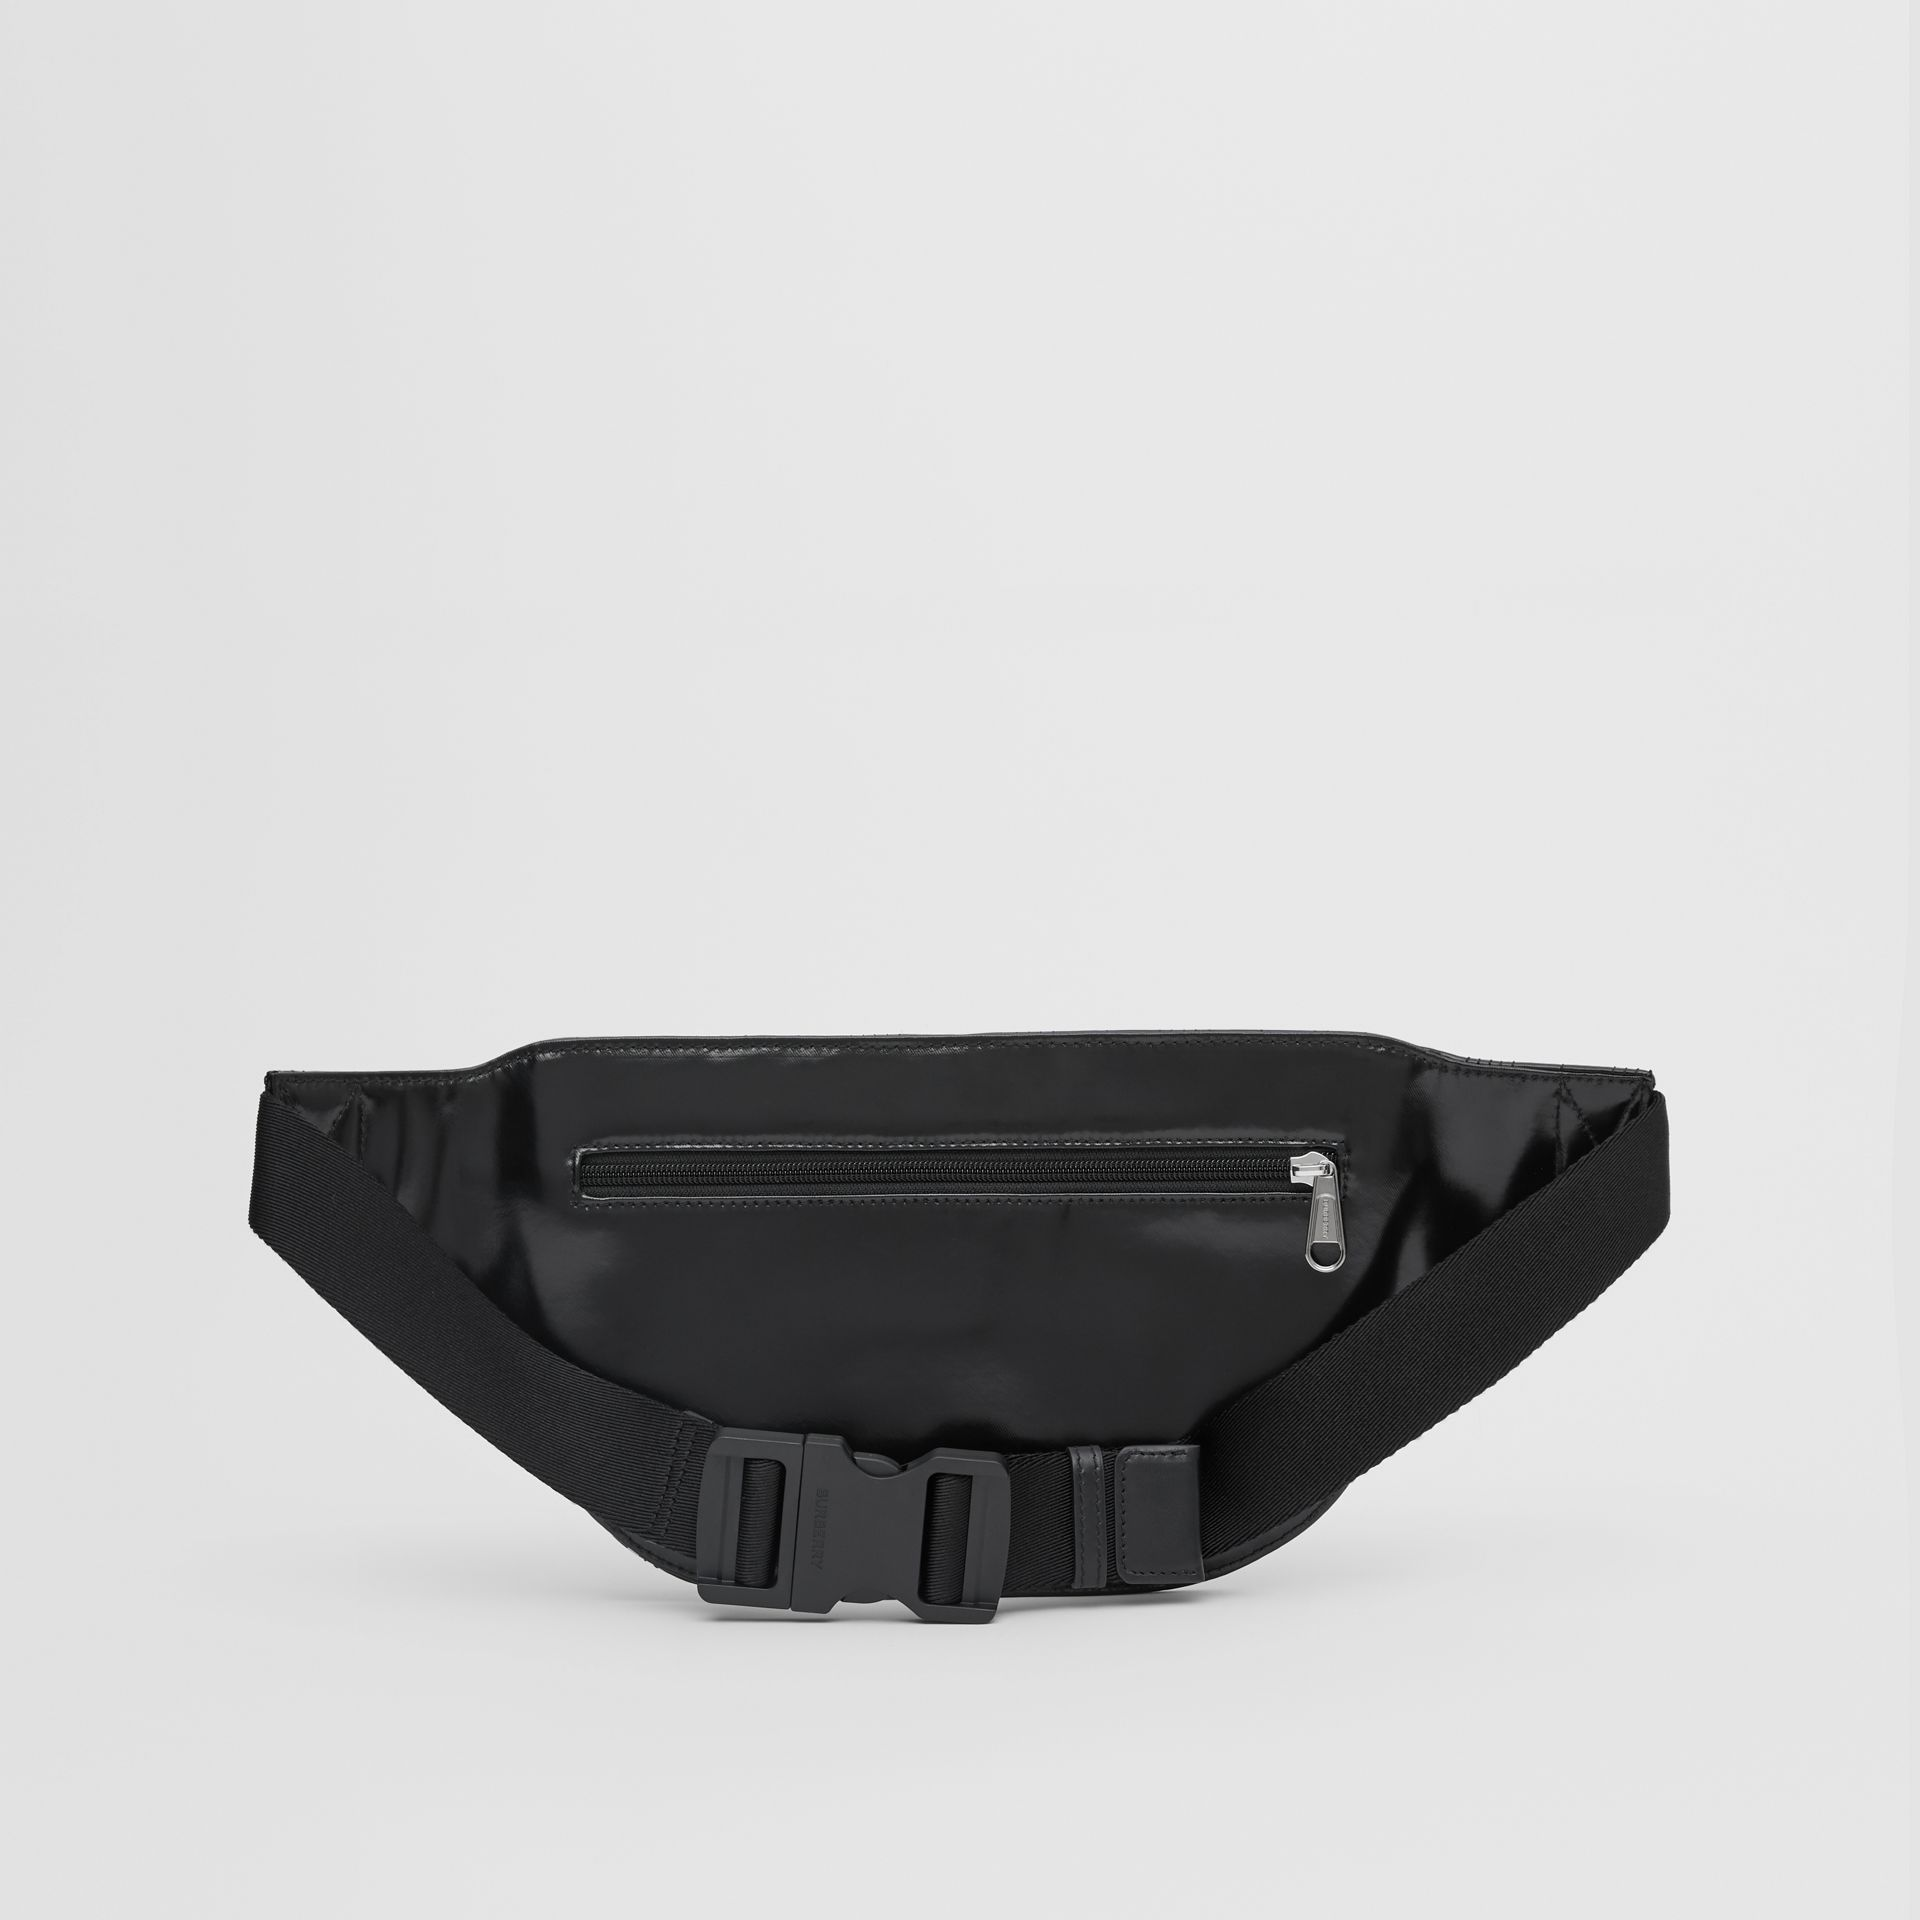 Horseferry Print Coated Canvas Brummell Bum Bag in Black - Men | Burberry United States - gallery image 9